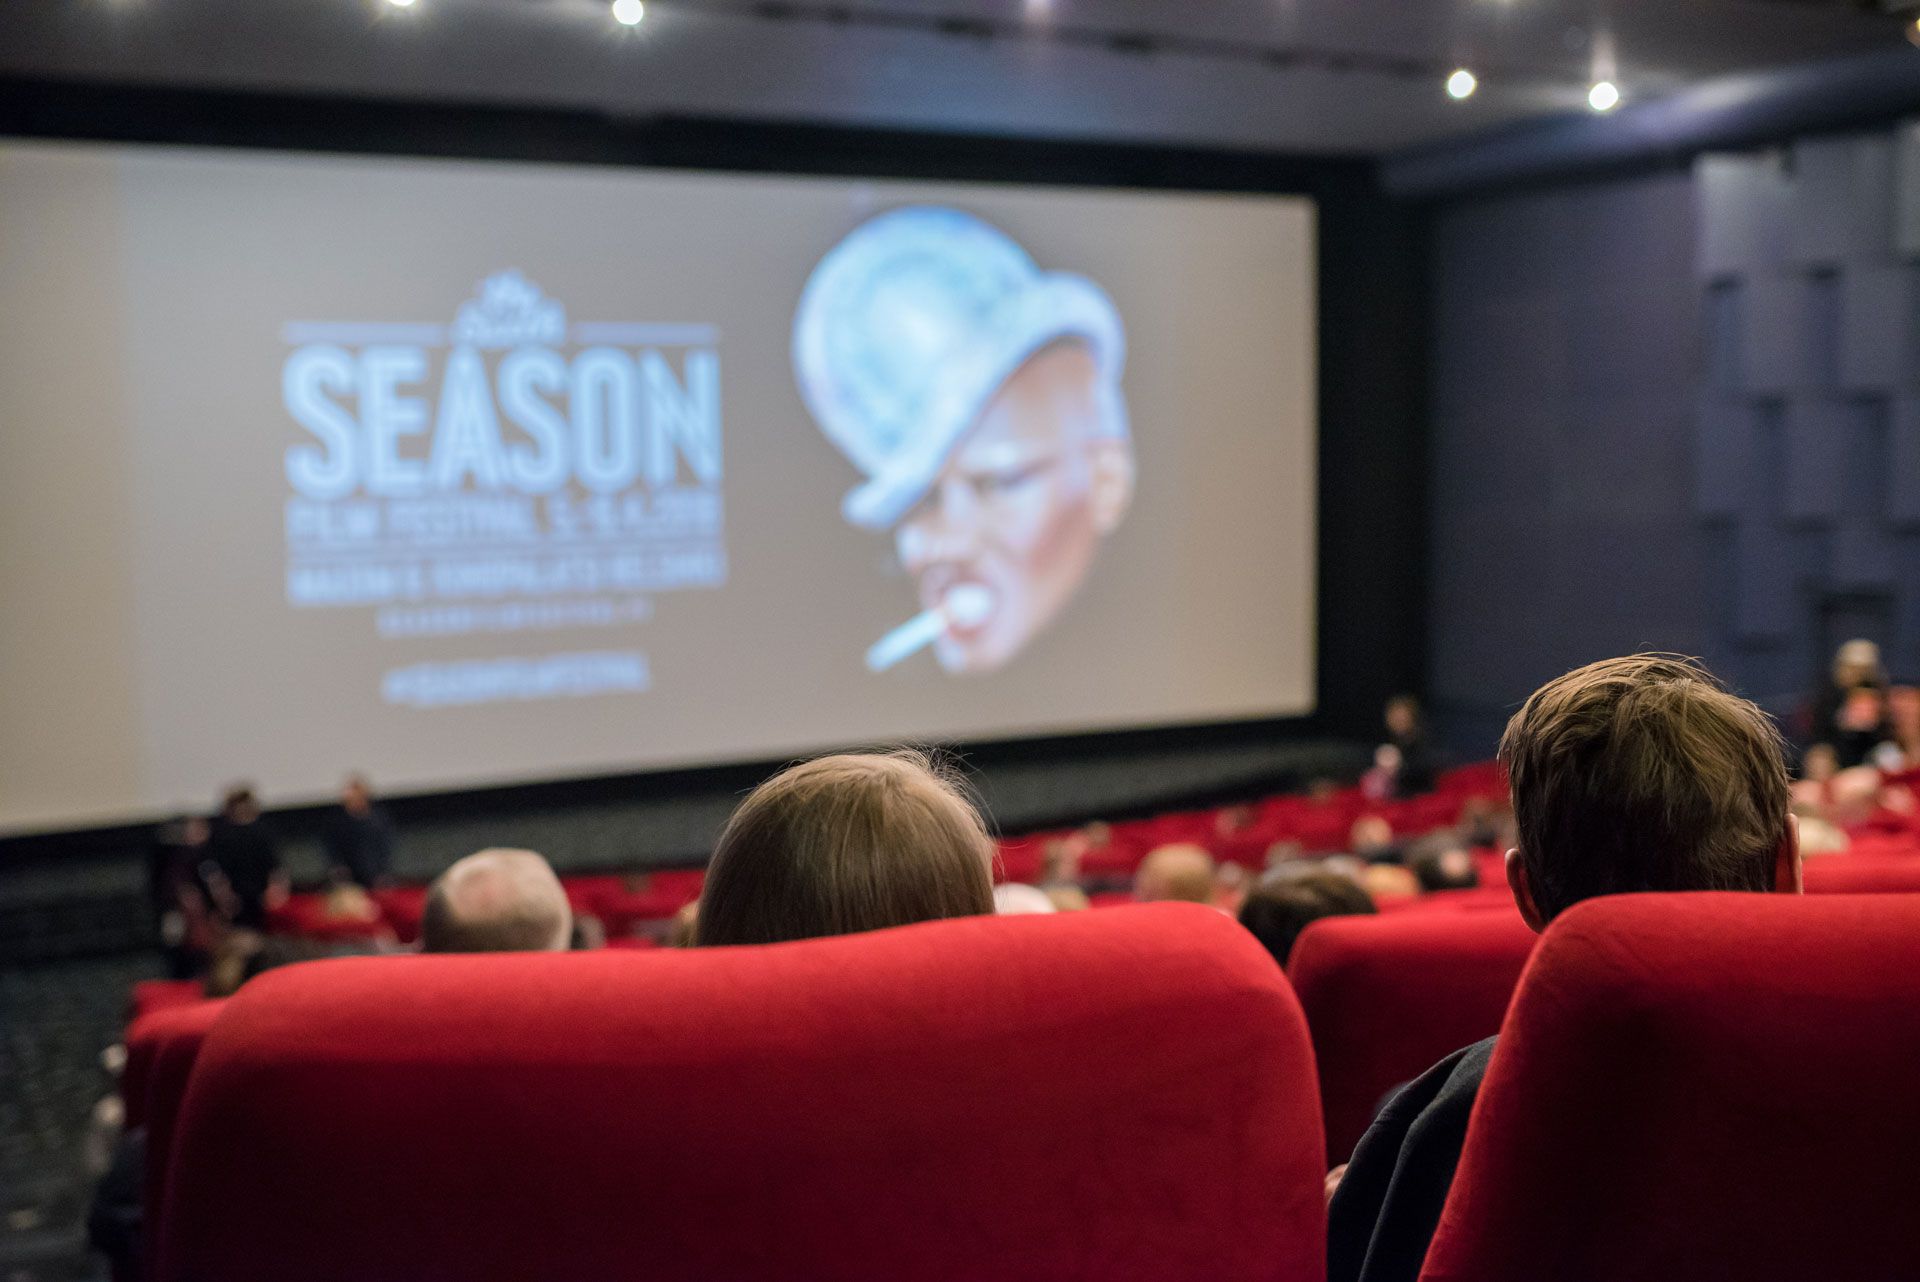 Link to event Virtual Season Film Festival 2020